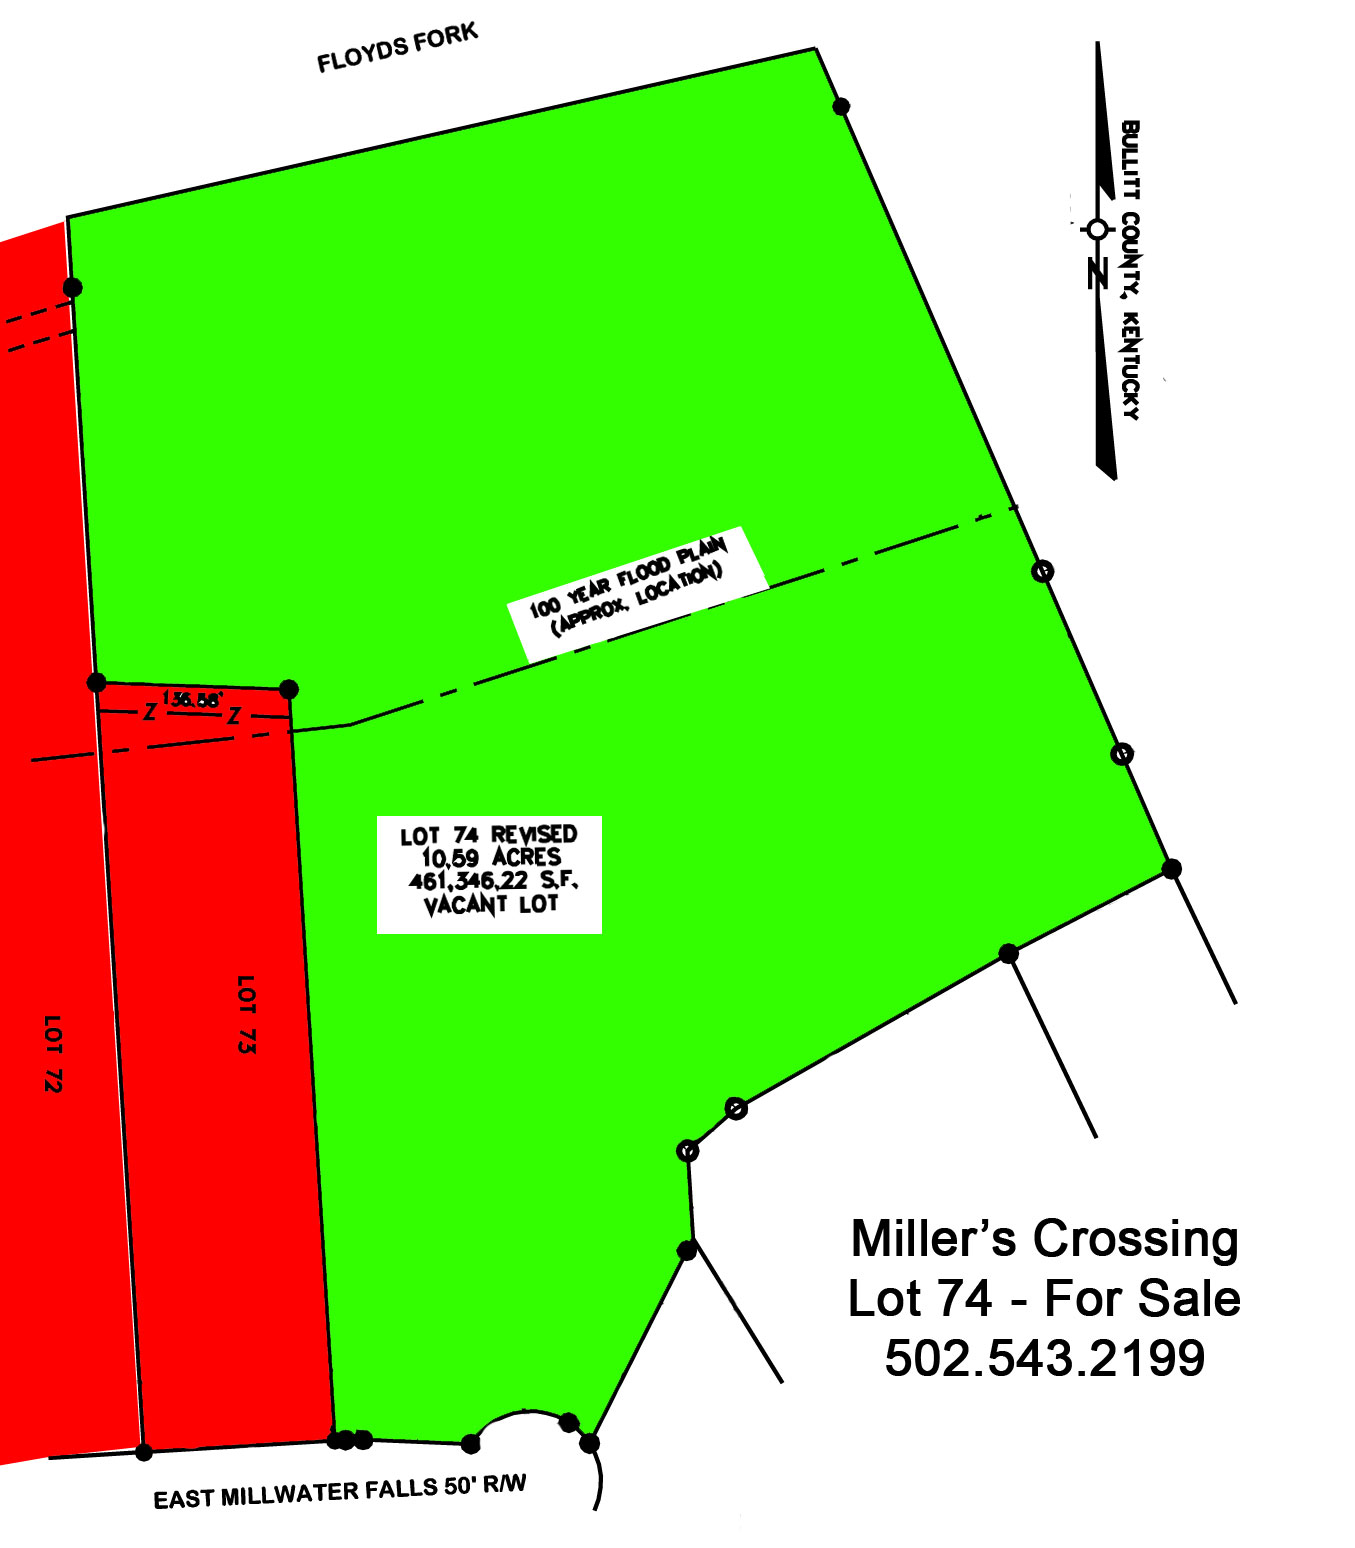 Miller\'s Crossing - Lot 74